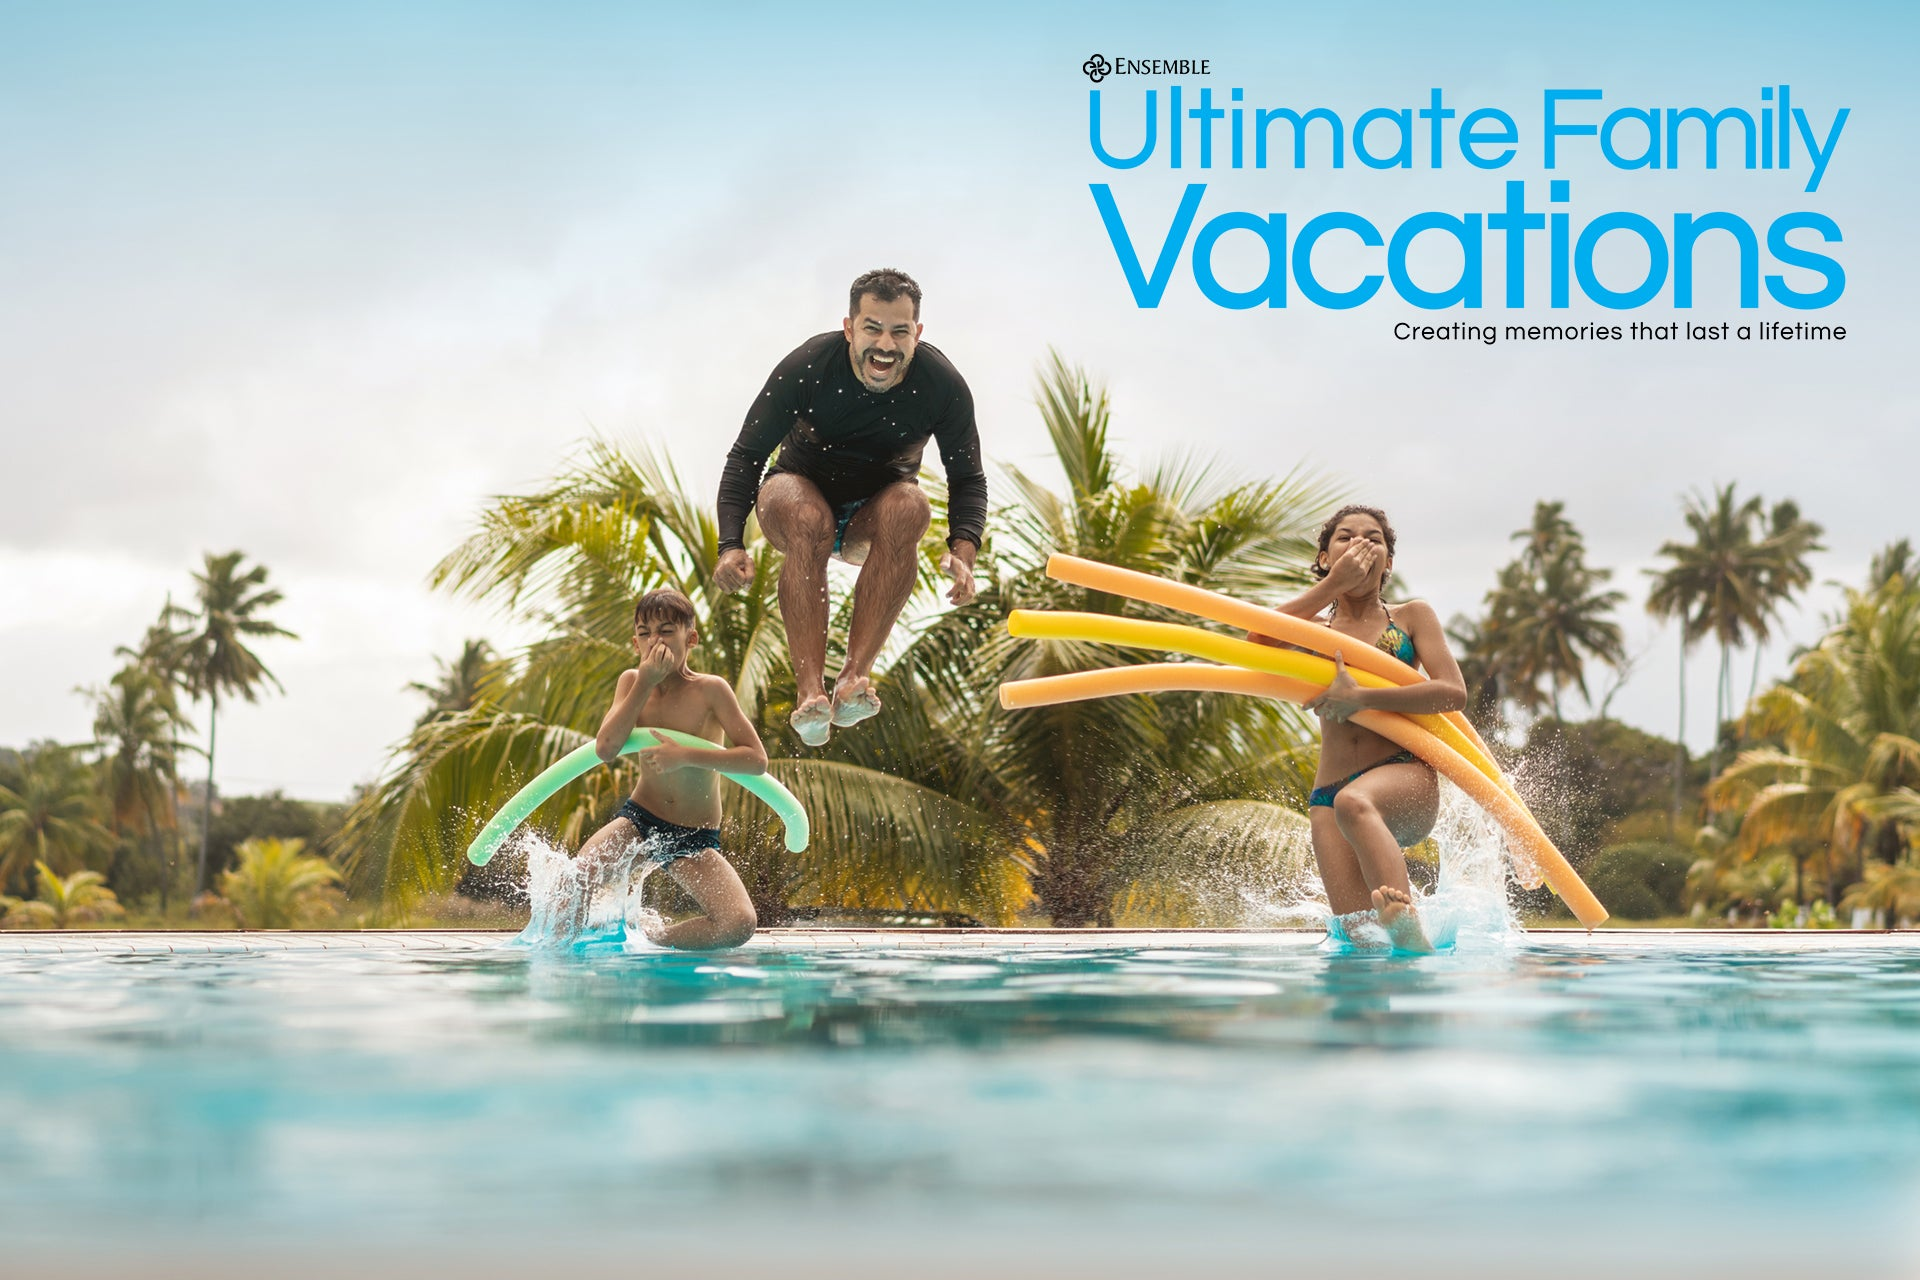 Ensemble Ultimate Family Vacations